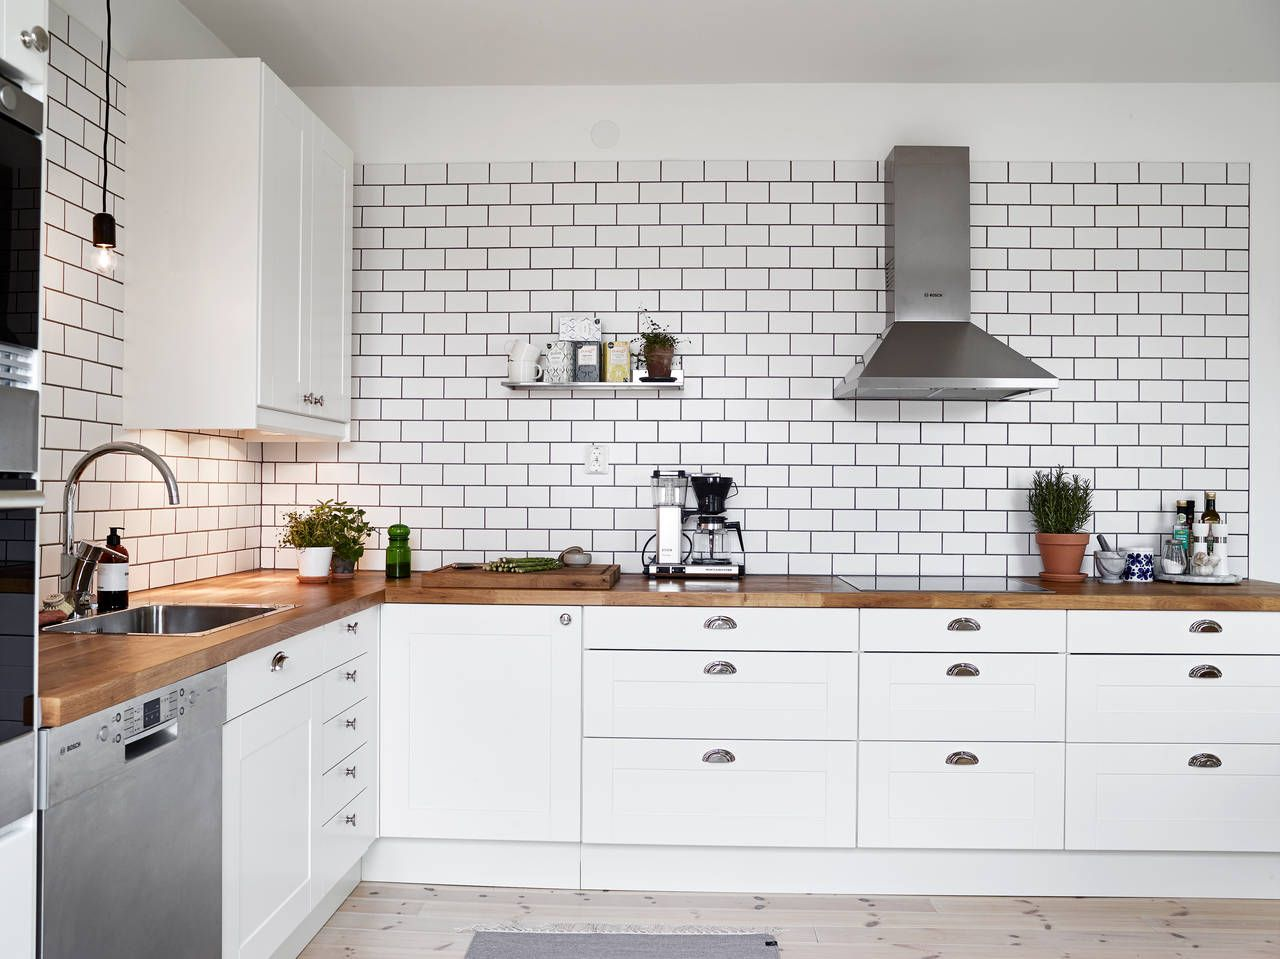 A White Tiles, Black Grout Kind Of Kitchen (COCO LAPINE DESIGN)